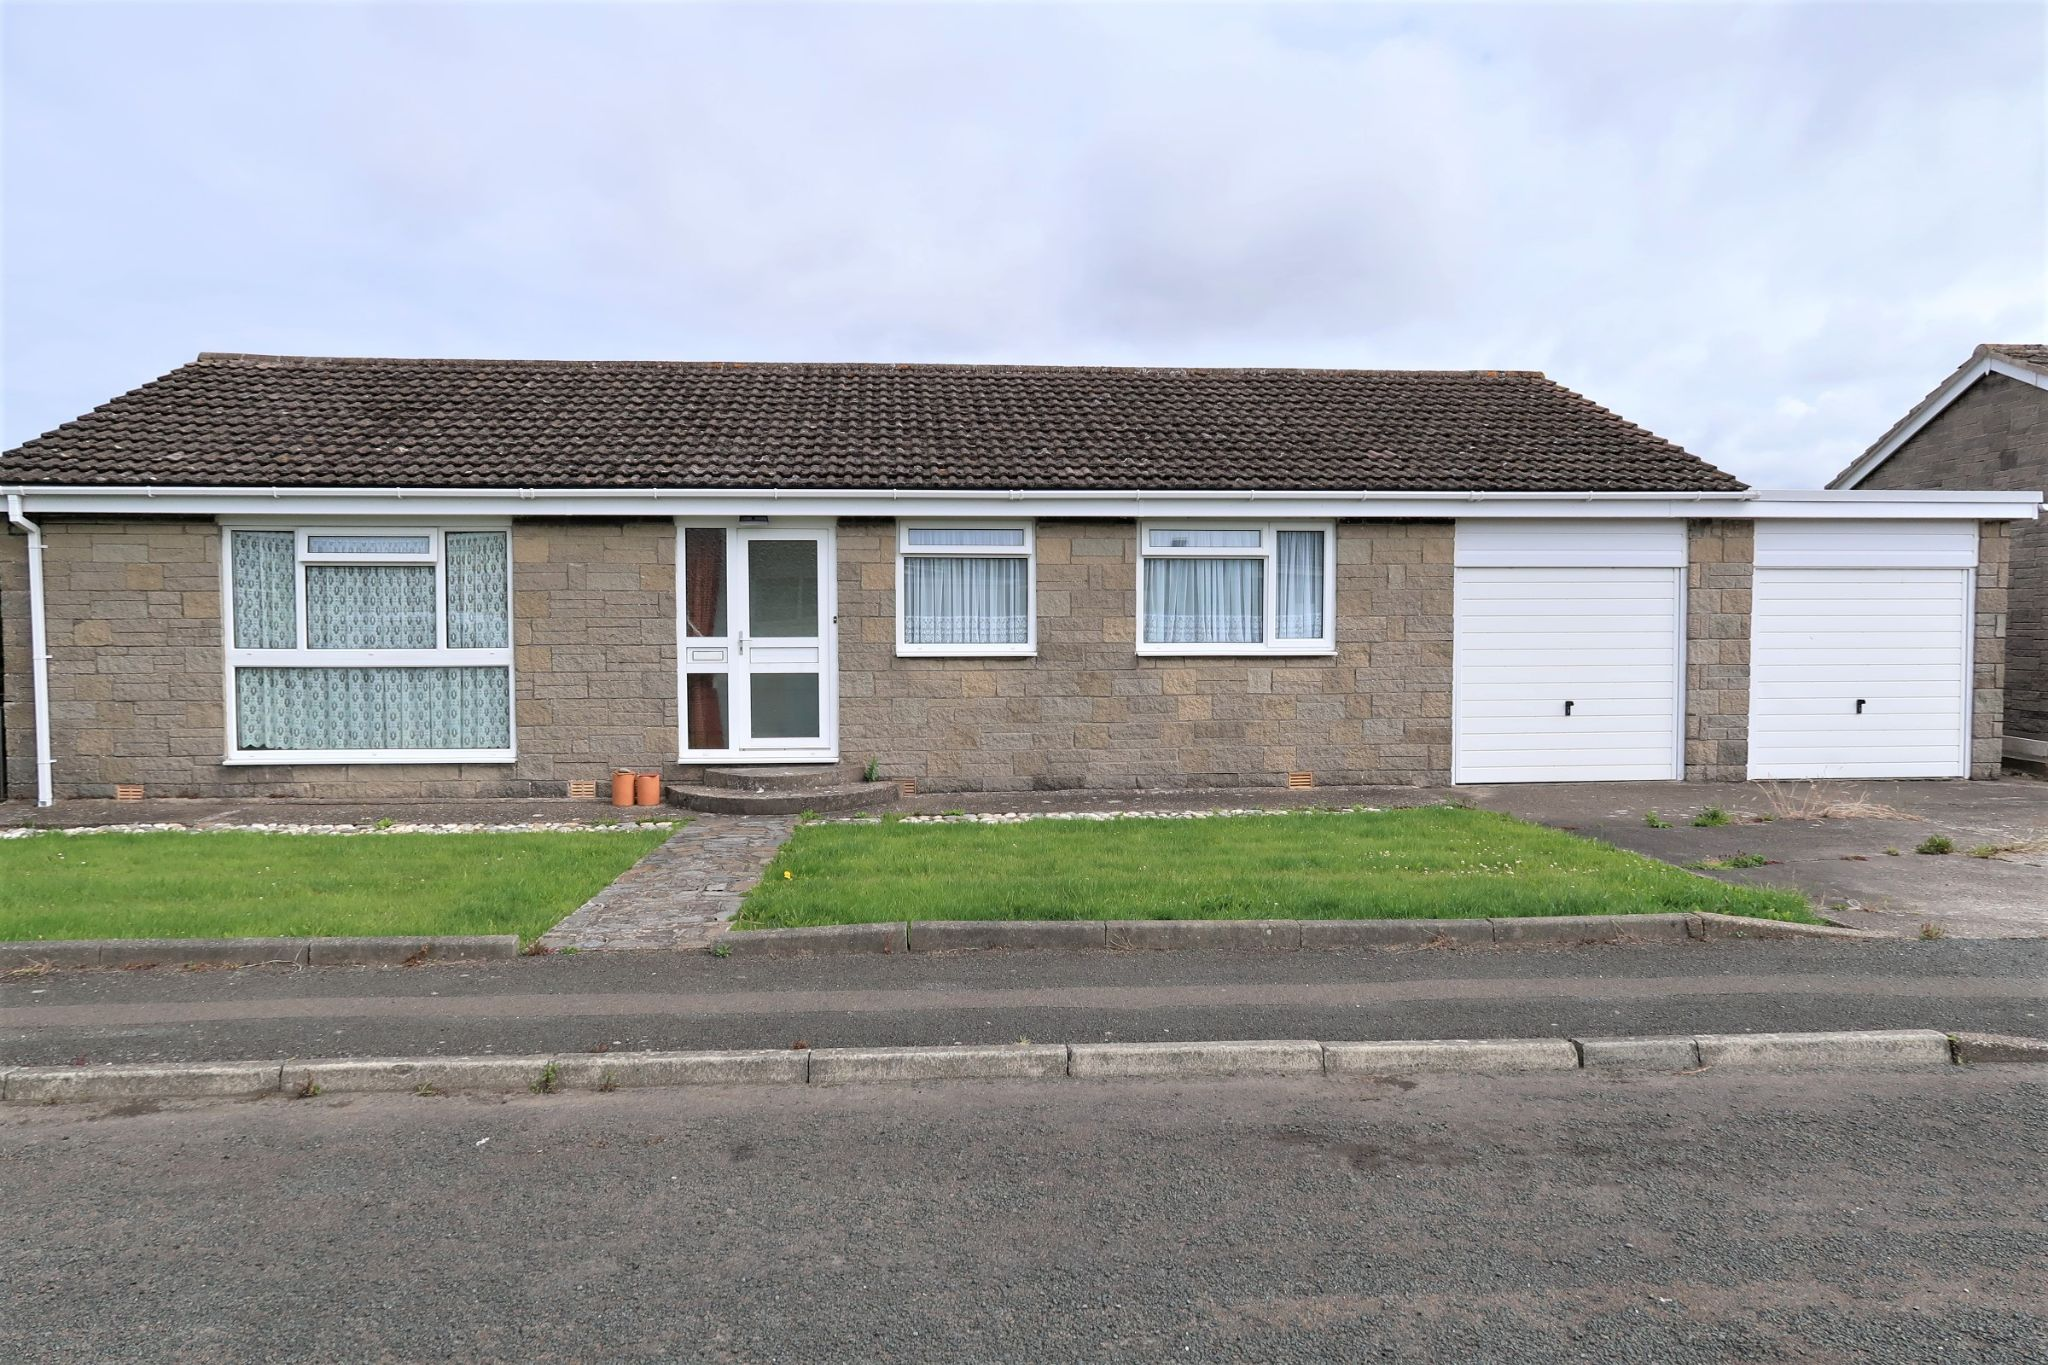 3 bedroom detached bungalow For Sale in Port Erin - Photograph 16